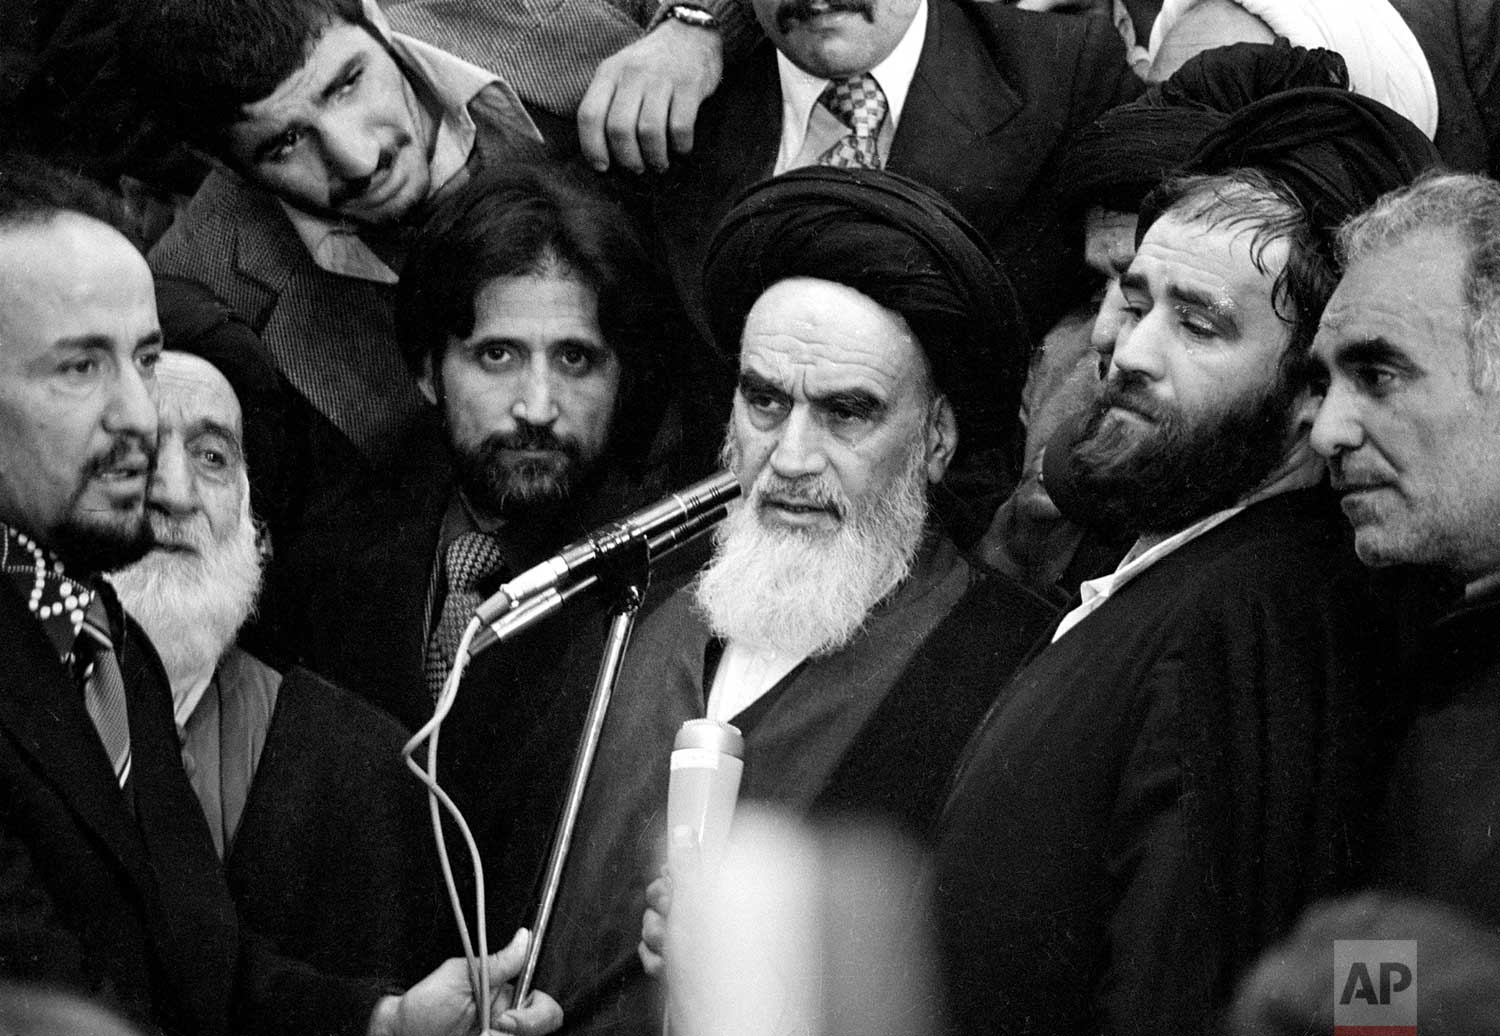 Ayatollah Khomeini addresses an audience in the airport building in Tehran, Iran, Feb. 1, 1979, after his arrival from 14 years of exile. (AP Photo)